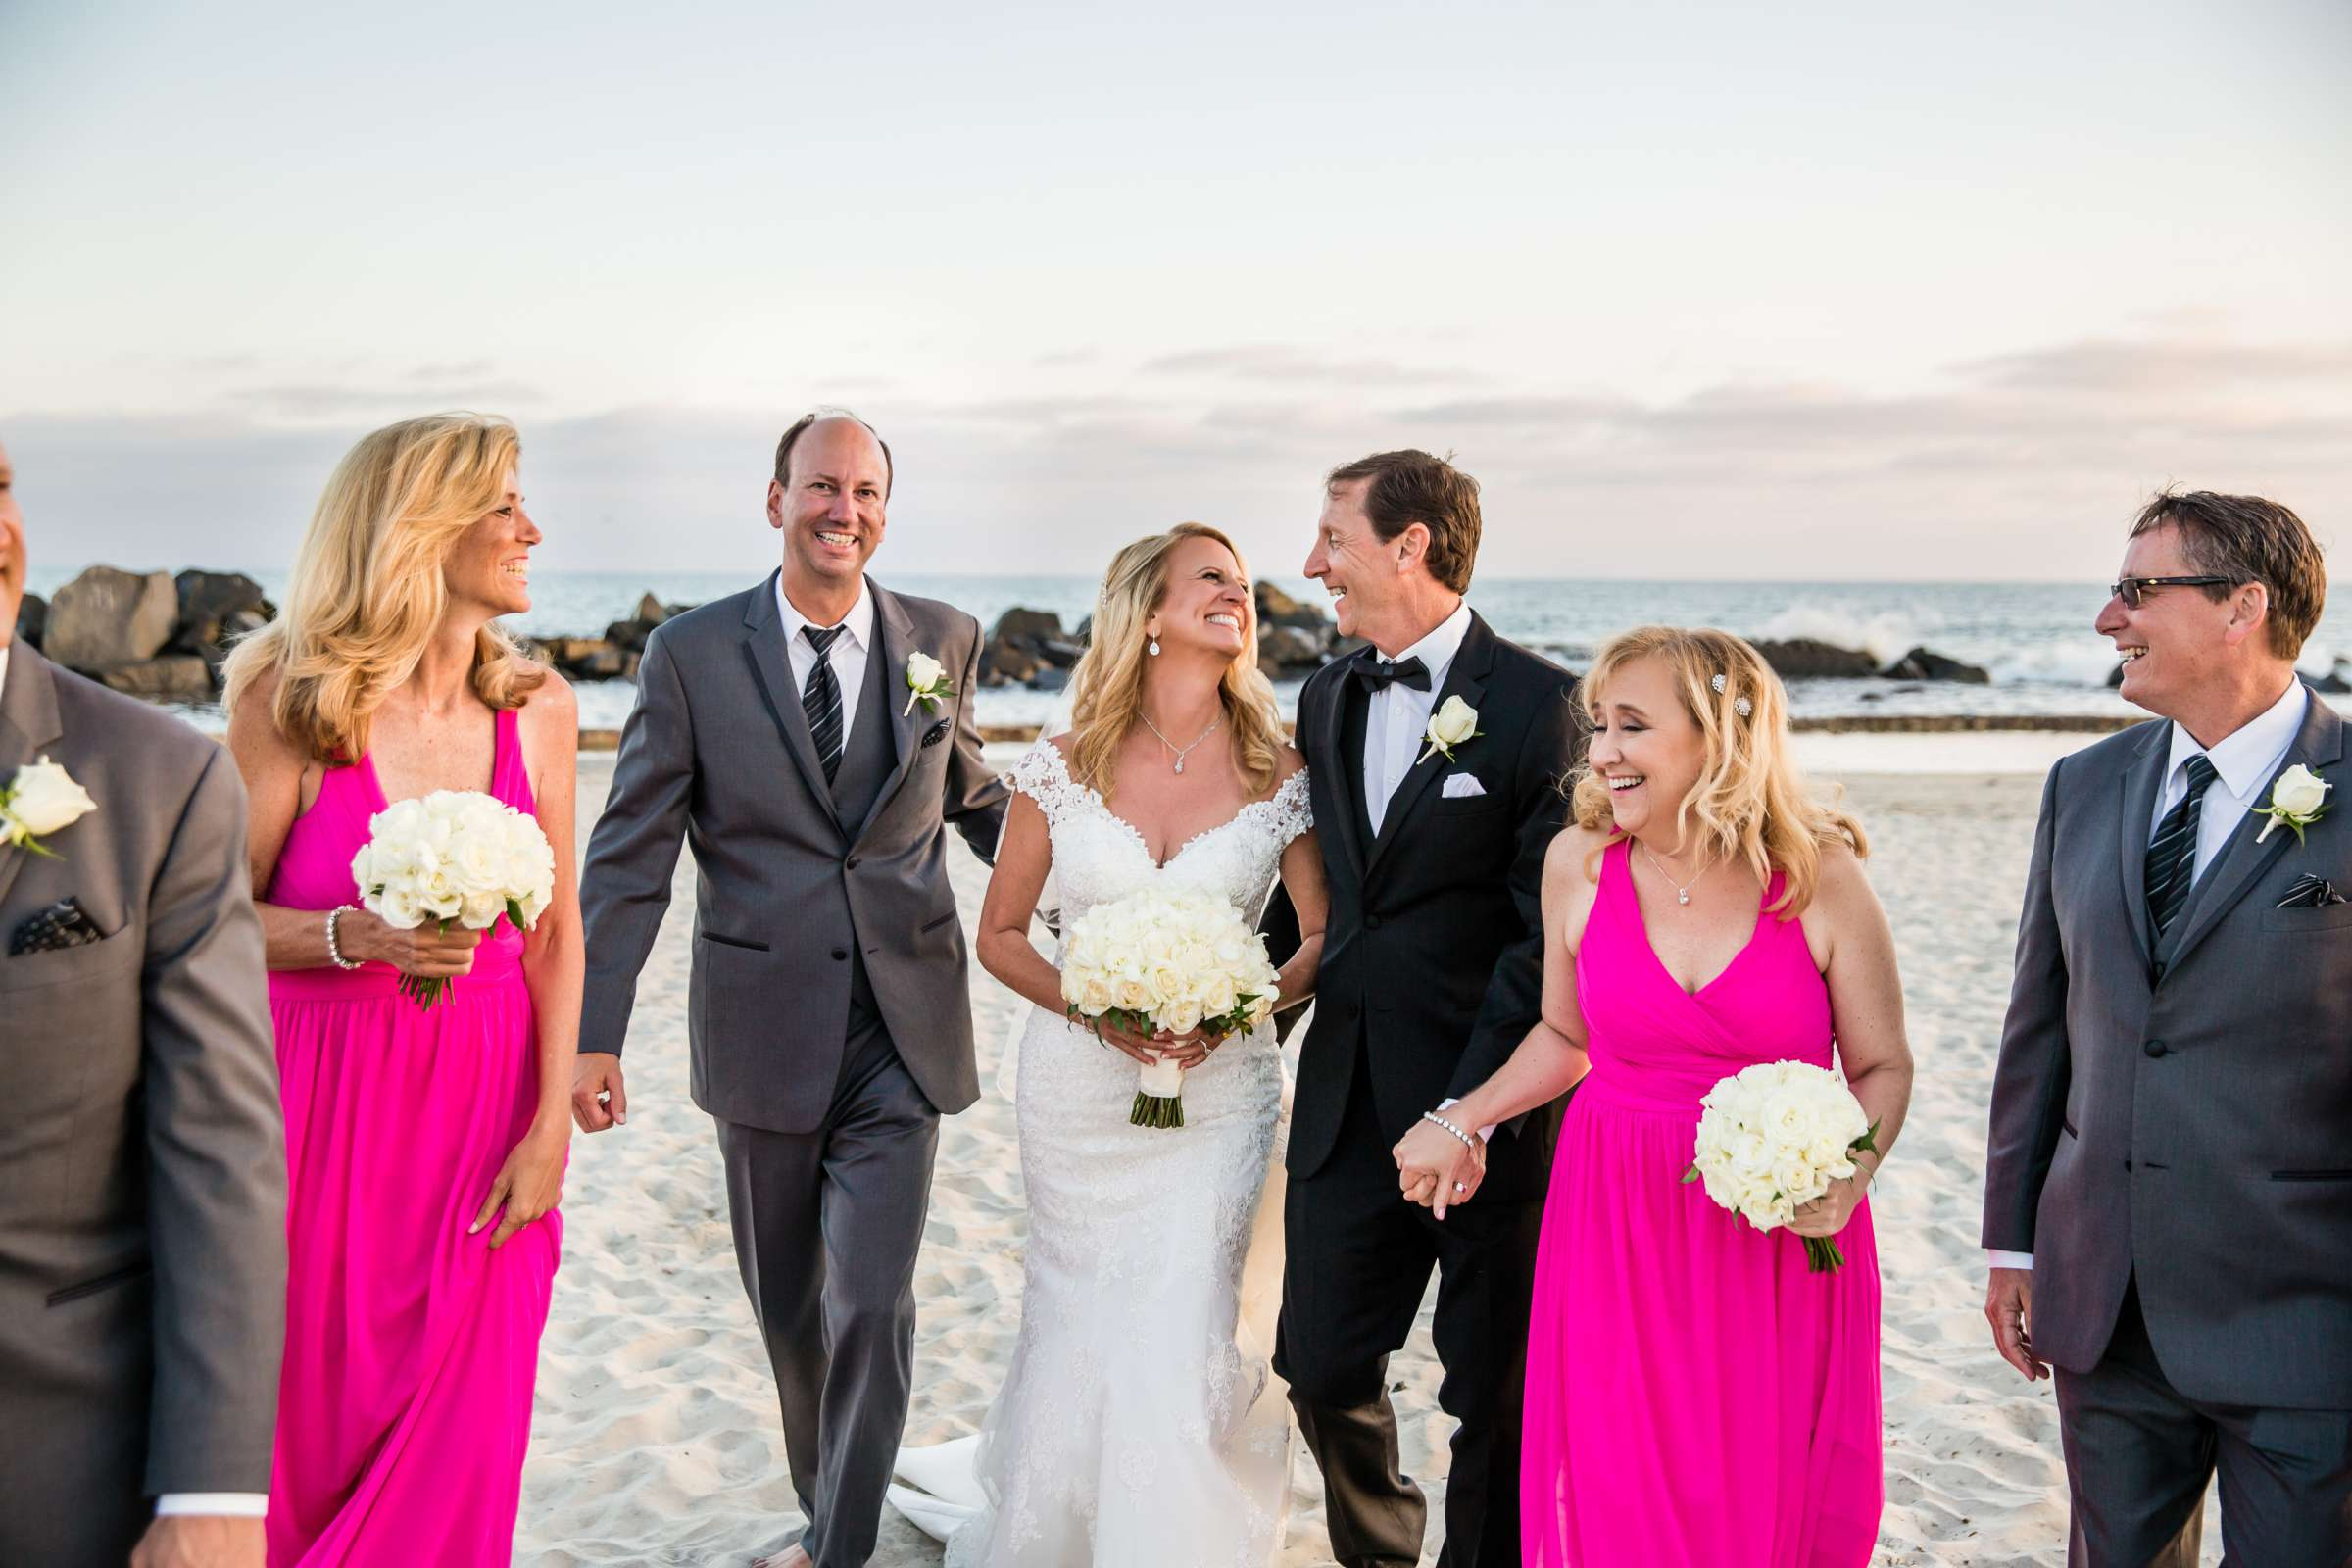 Hotel Del Coronado Wedding coordinated by Creative Affairs Inc, Diane and Paul Wedding Photo #19 by True Photography